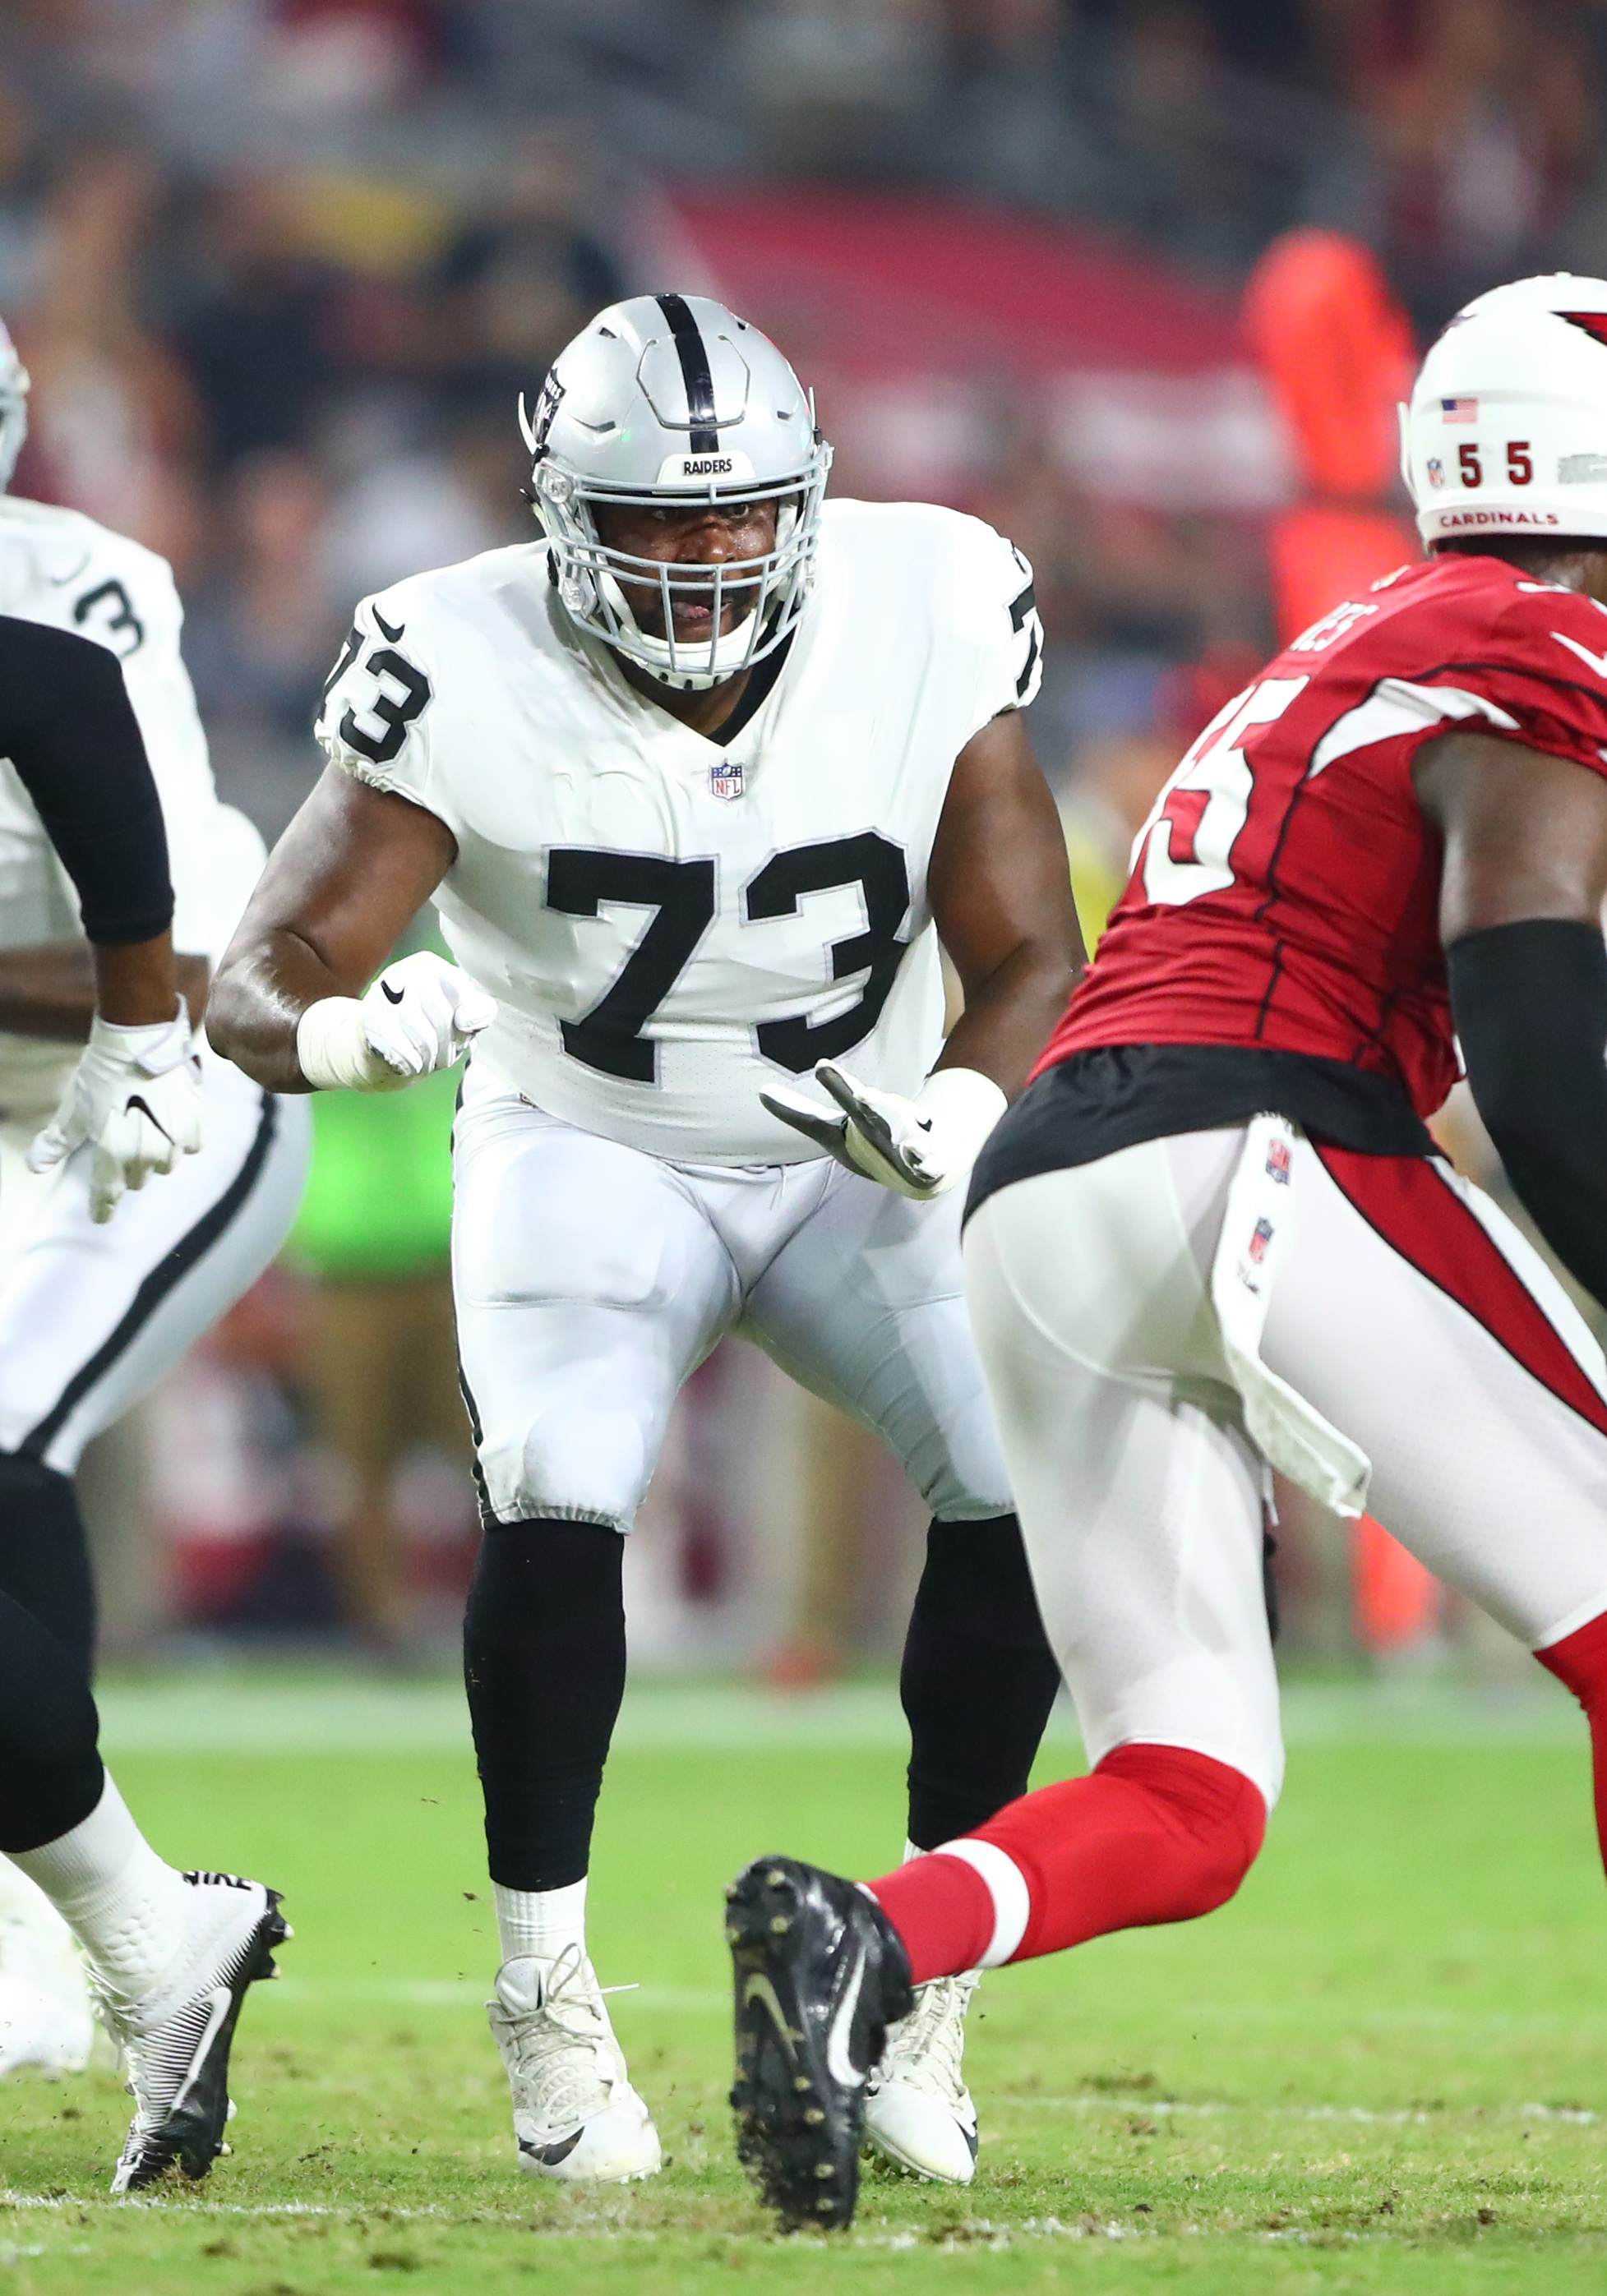 Bills signs ol russell bodine marshall newhouse for Www newhouse com